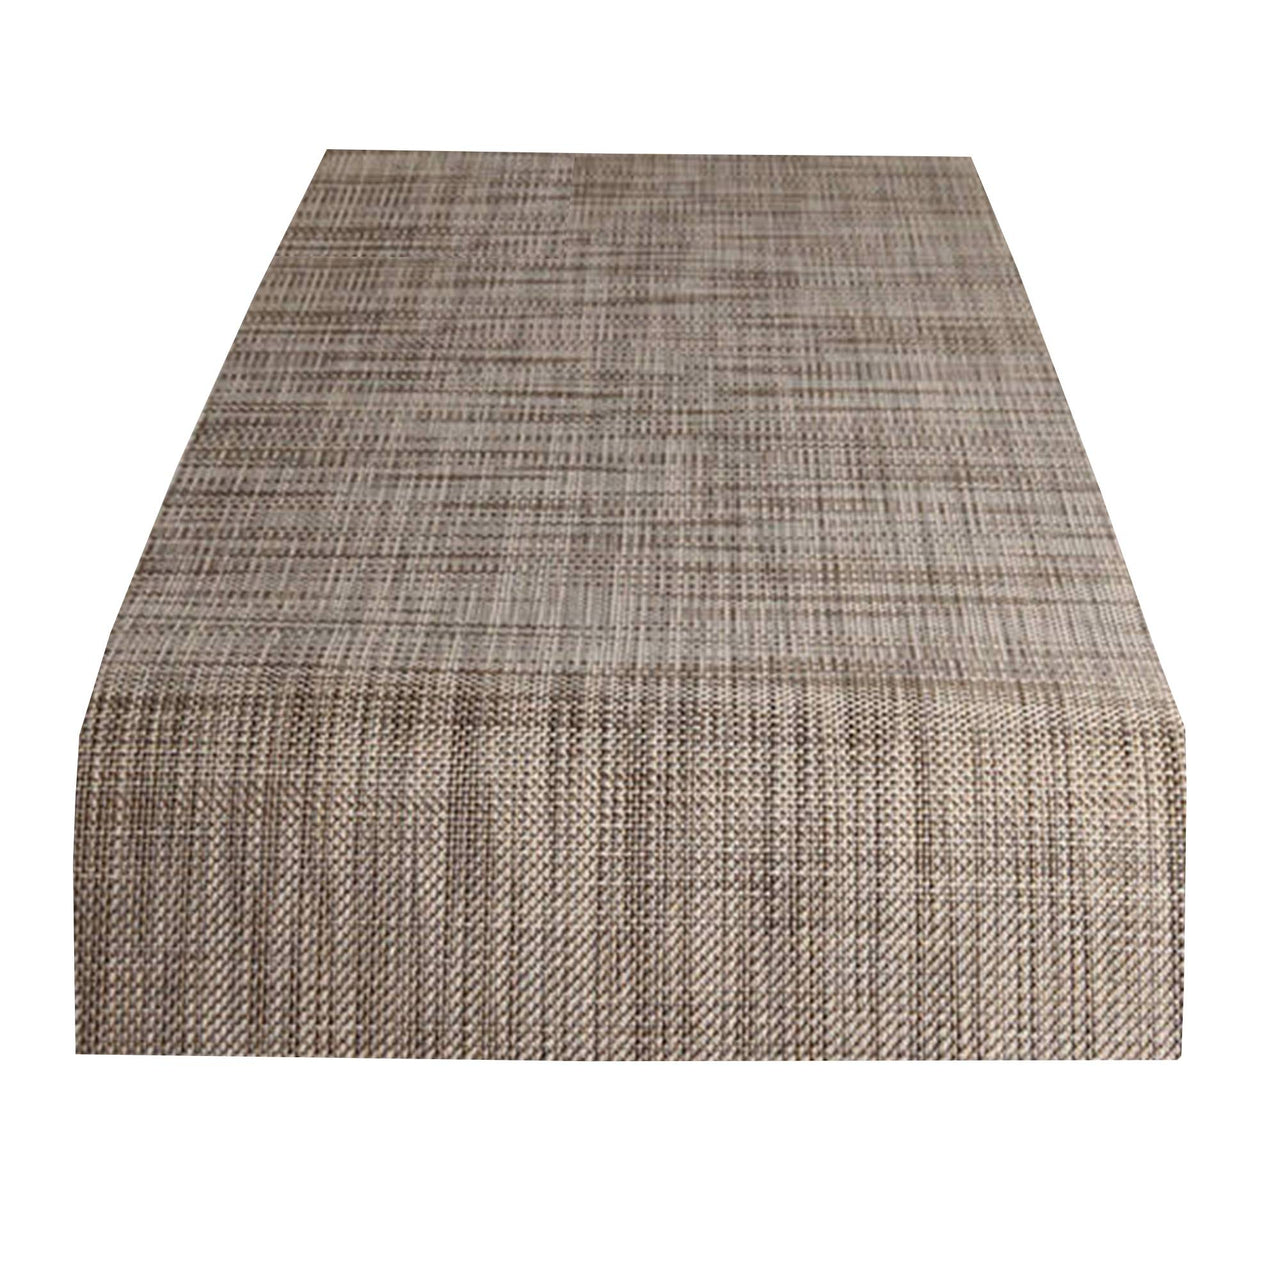 Mini Basketweave Table Runner: Soapstone